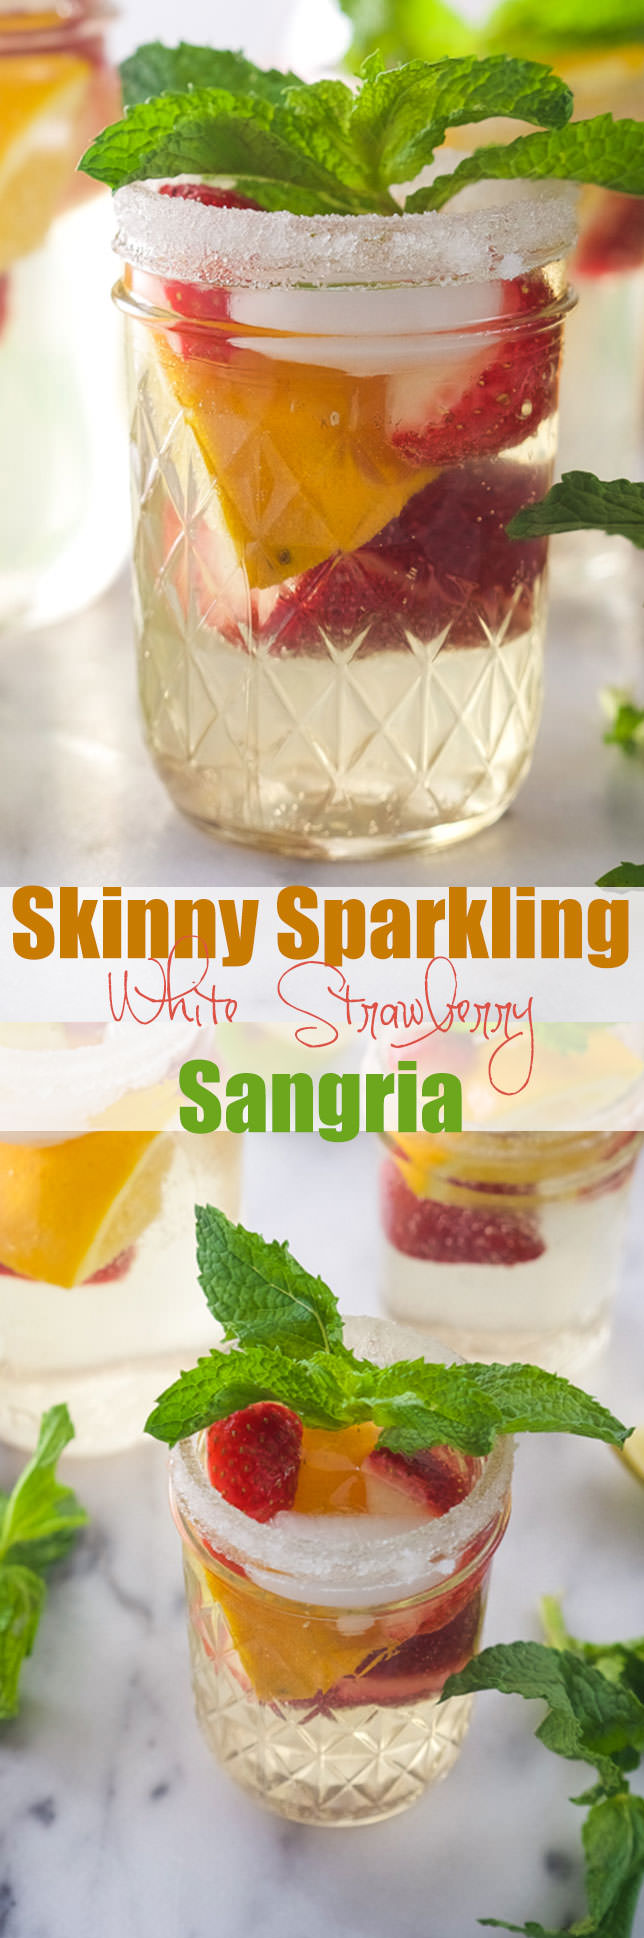 Sparkling White Strawberry Sangria is a refreshing, bubbly sangria loaded with tons of fresh strawberries and a crisp white wine!